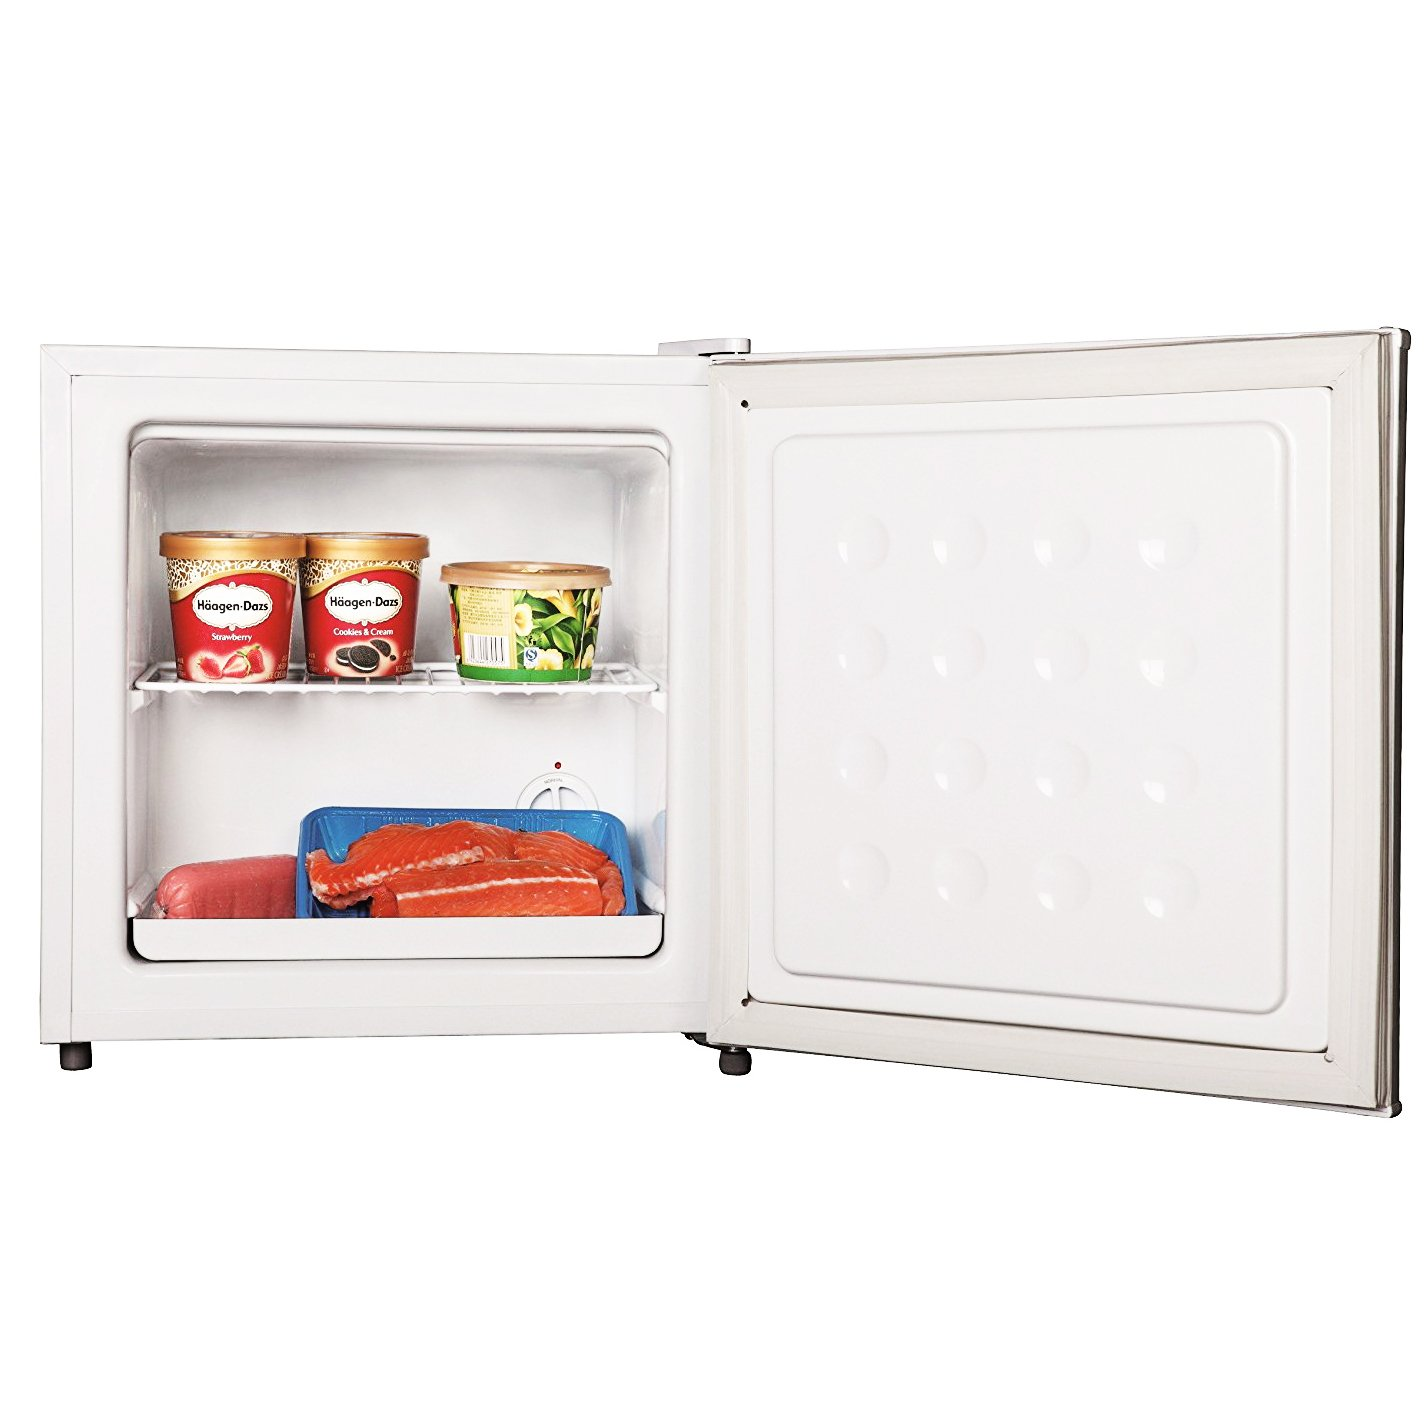 Image Result For Table Top Freezer Ebay